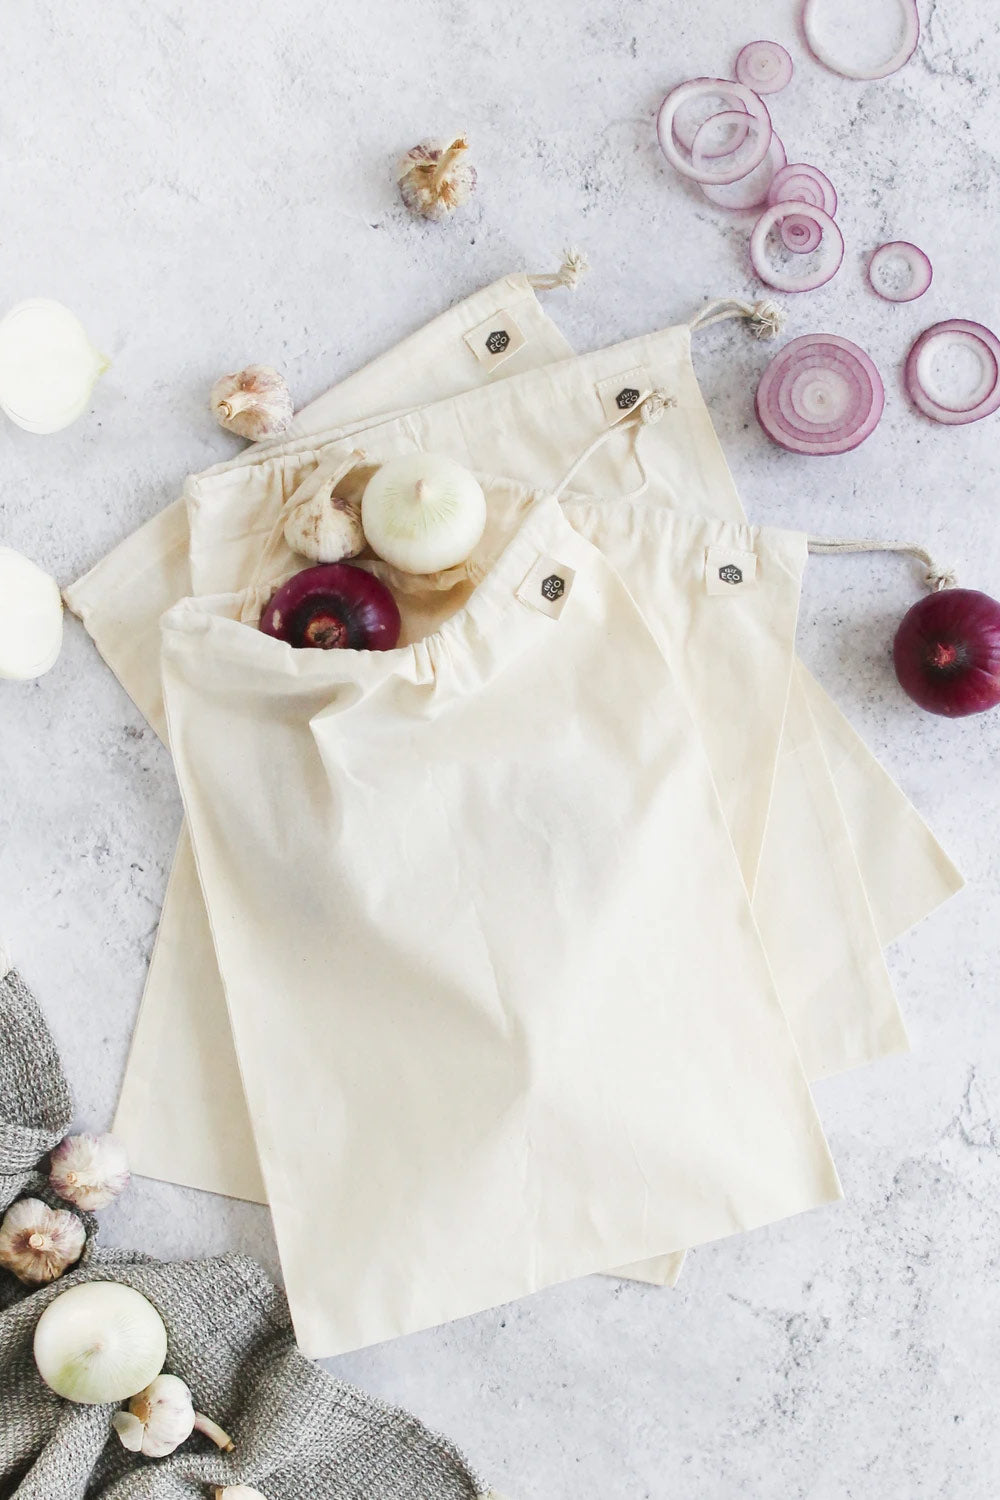 Ever Eco ~ Organic Cotton Muslin Produce Bag 4pk